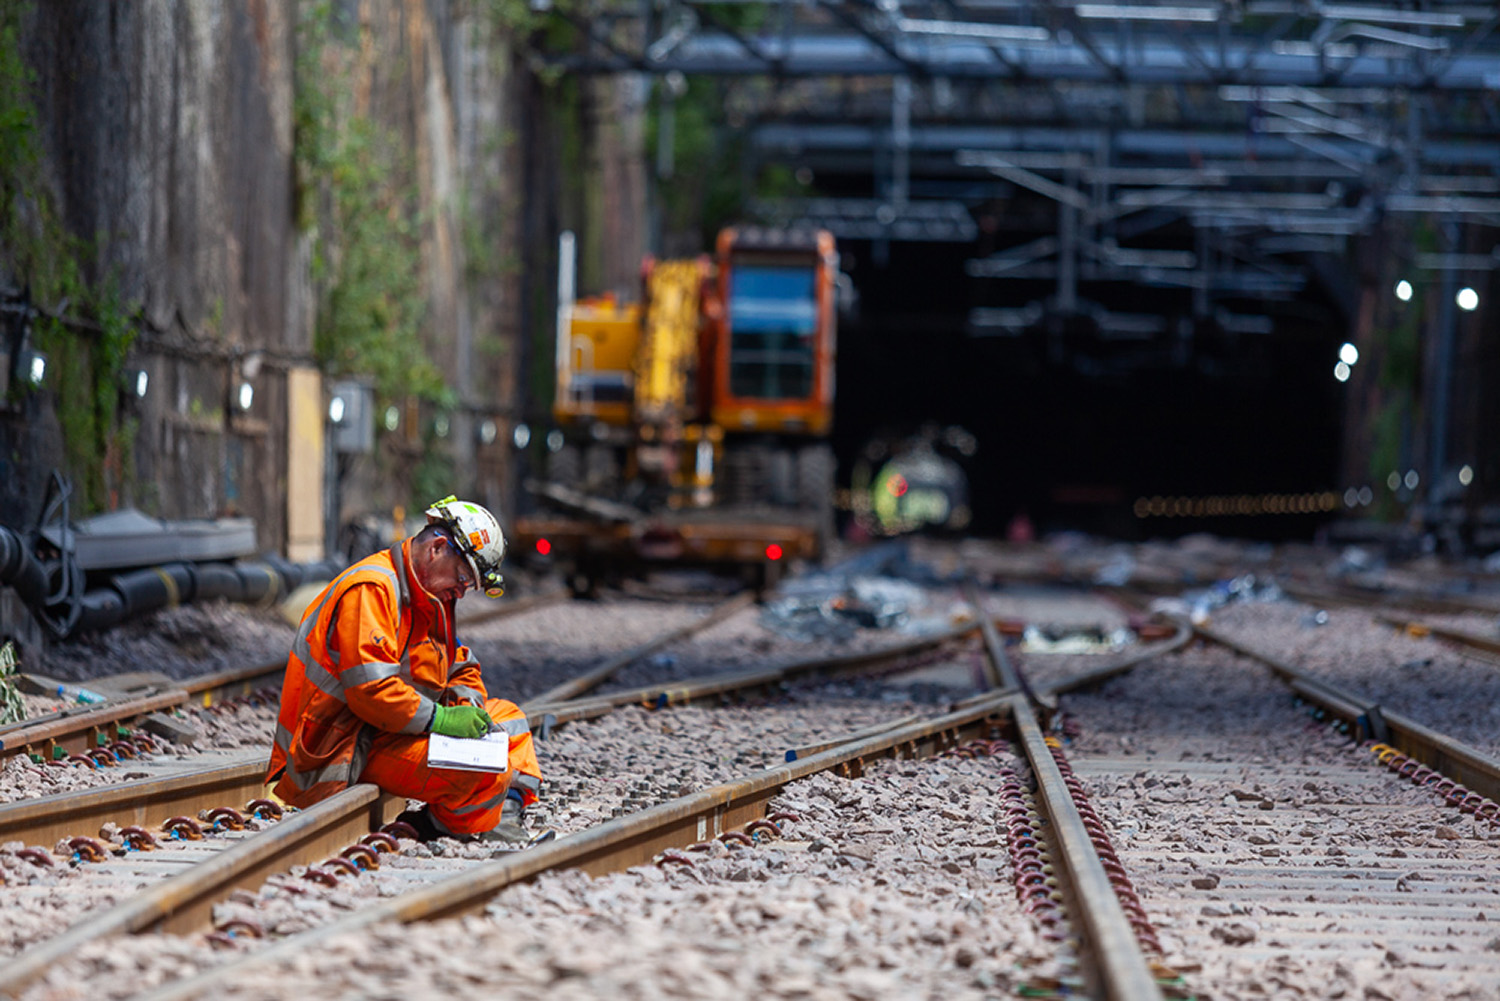 Liverpool Lime Street Signalling Works